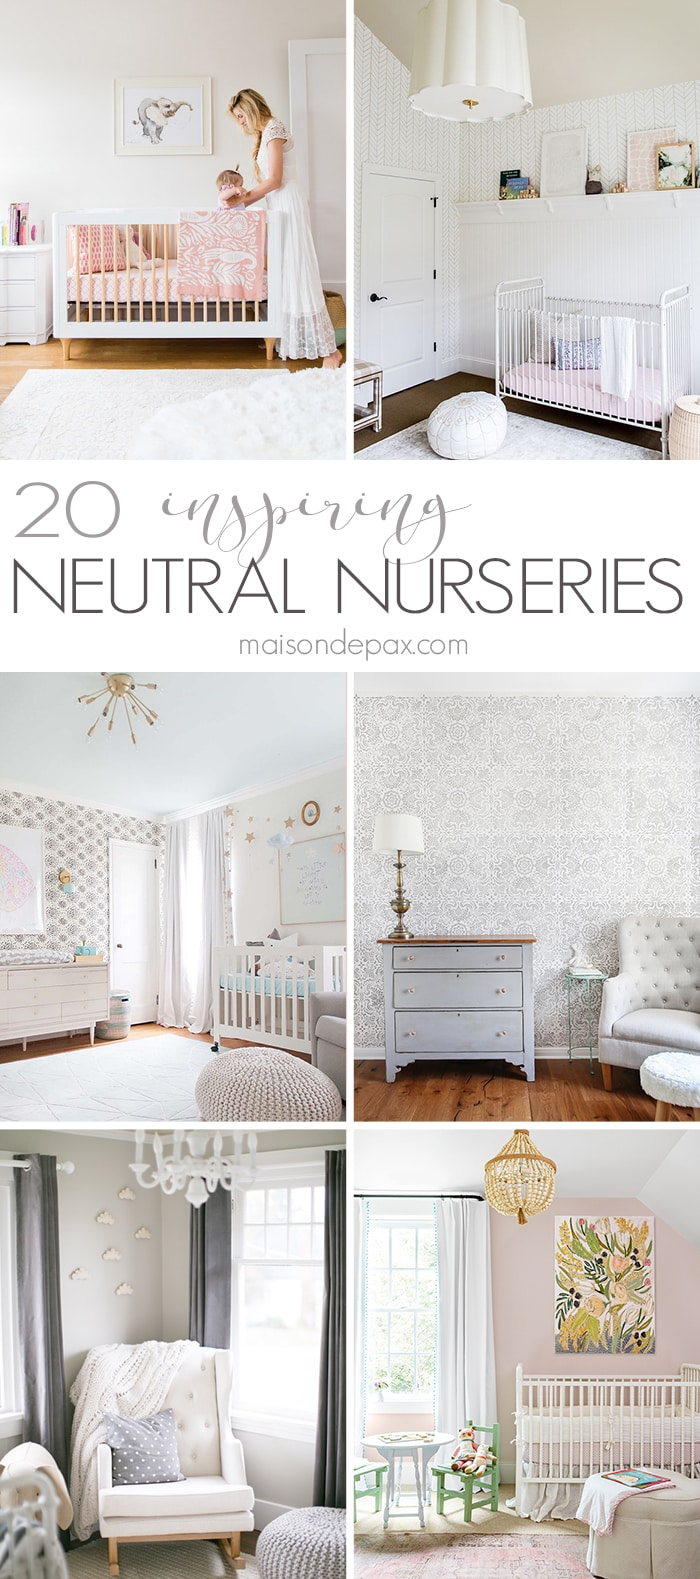 Surprise neutral nursery decorating ideas maison de pax for Decorating with neutral walls